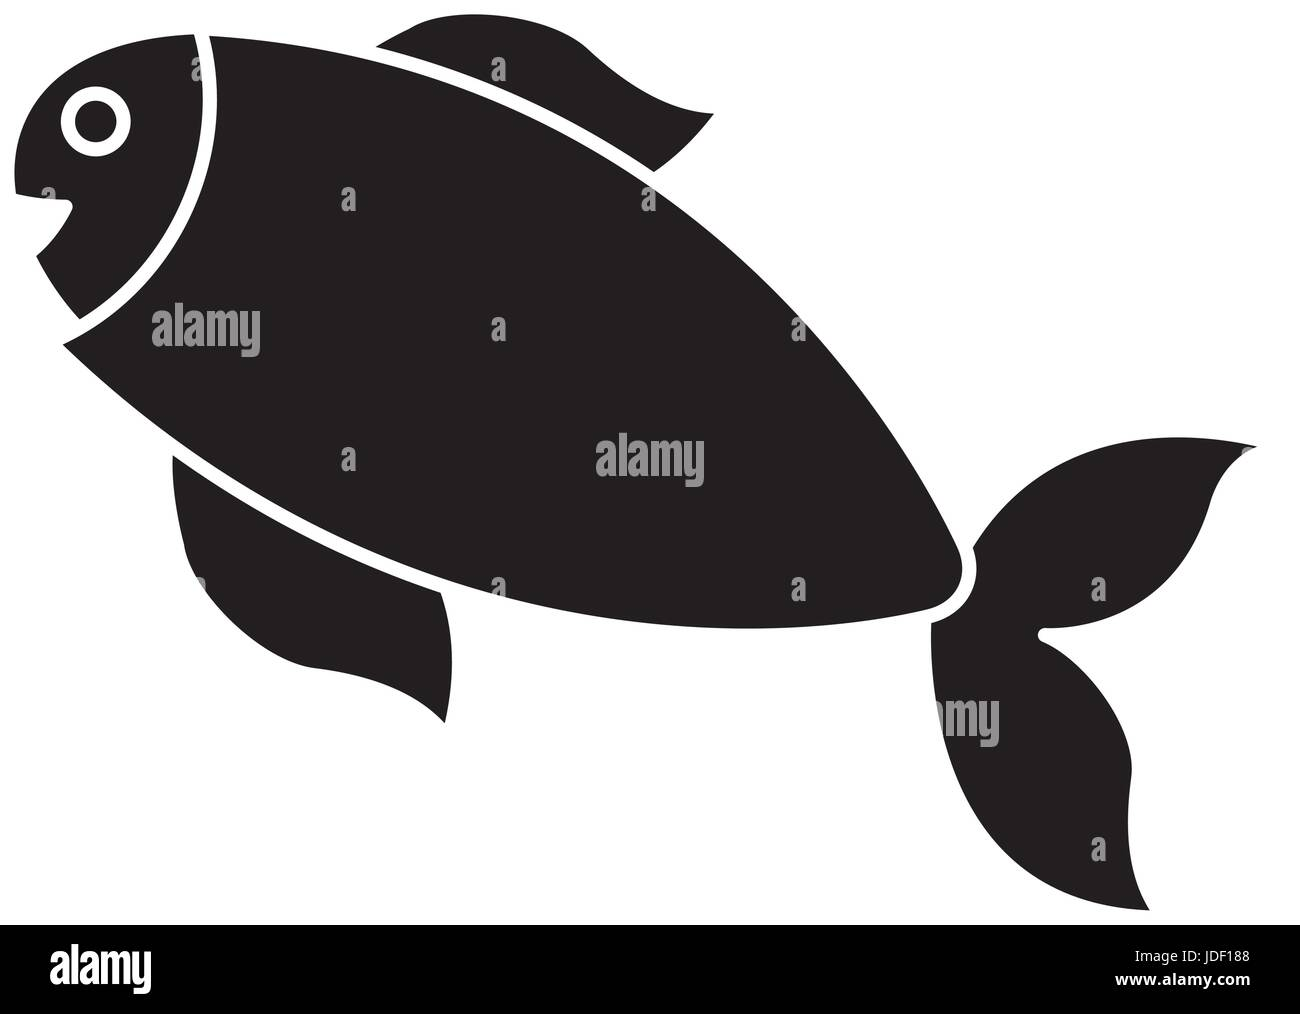 sea life design - Stock Image